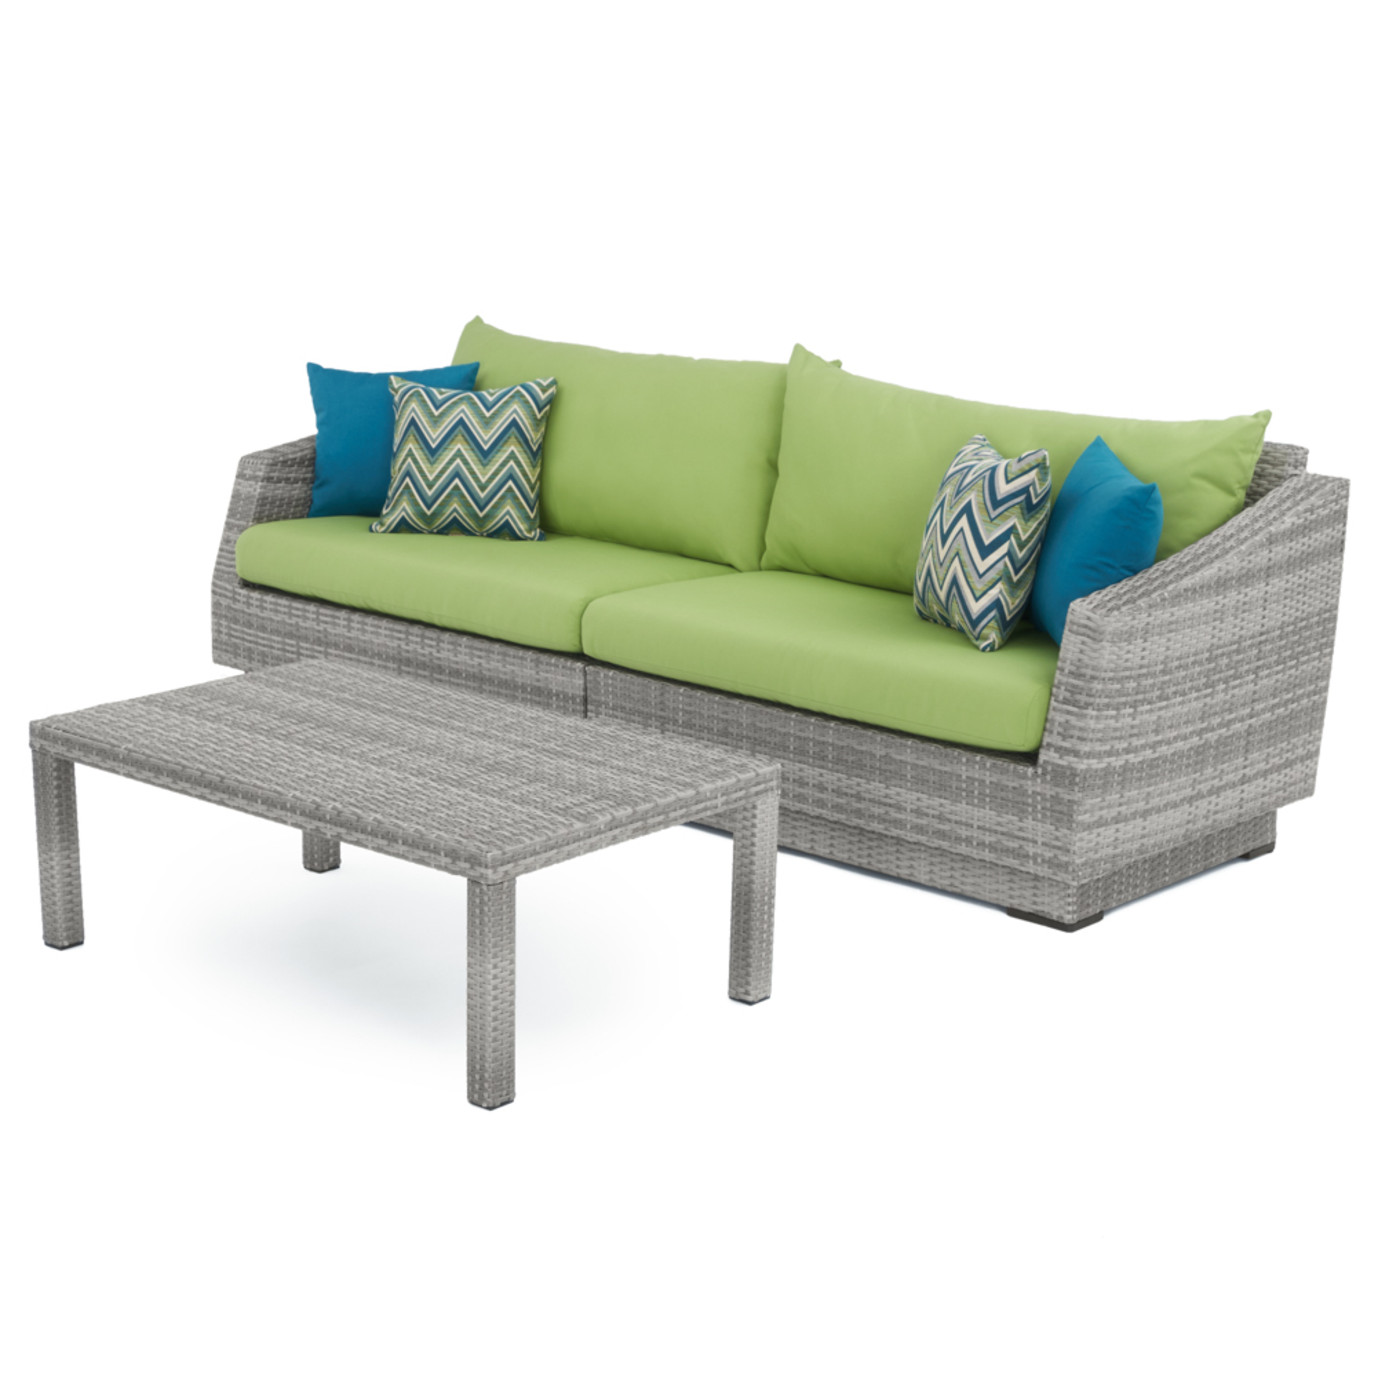 Cannes™ Sofa and Coffee Table - Ginkgo Green